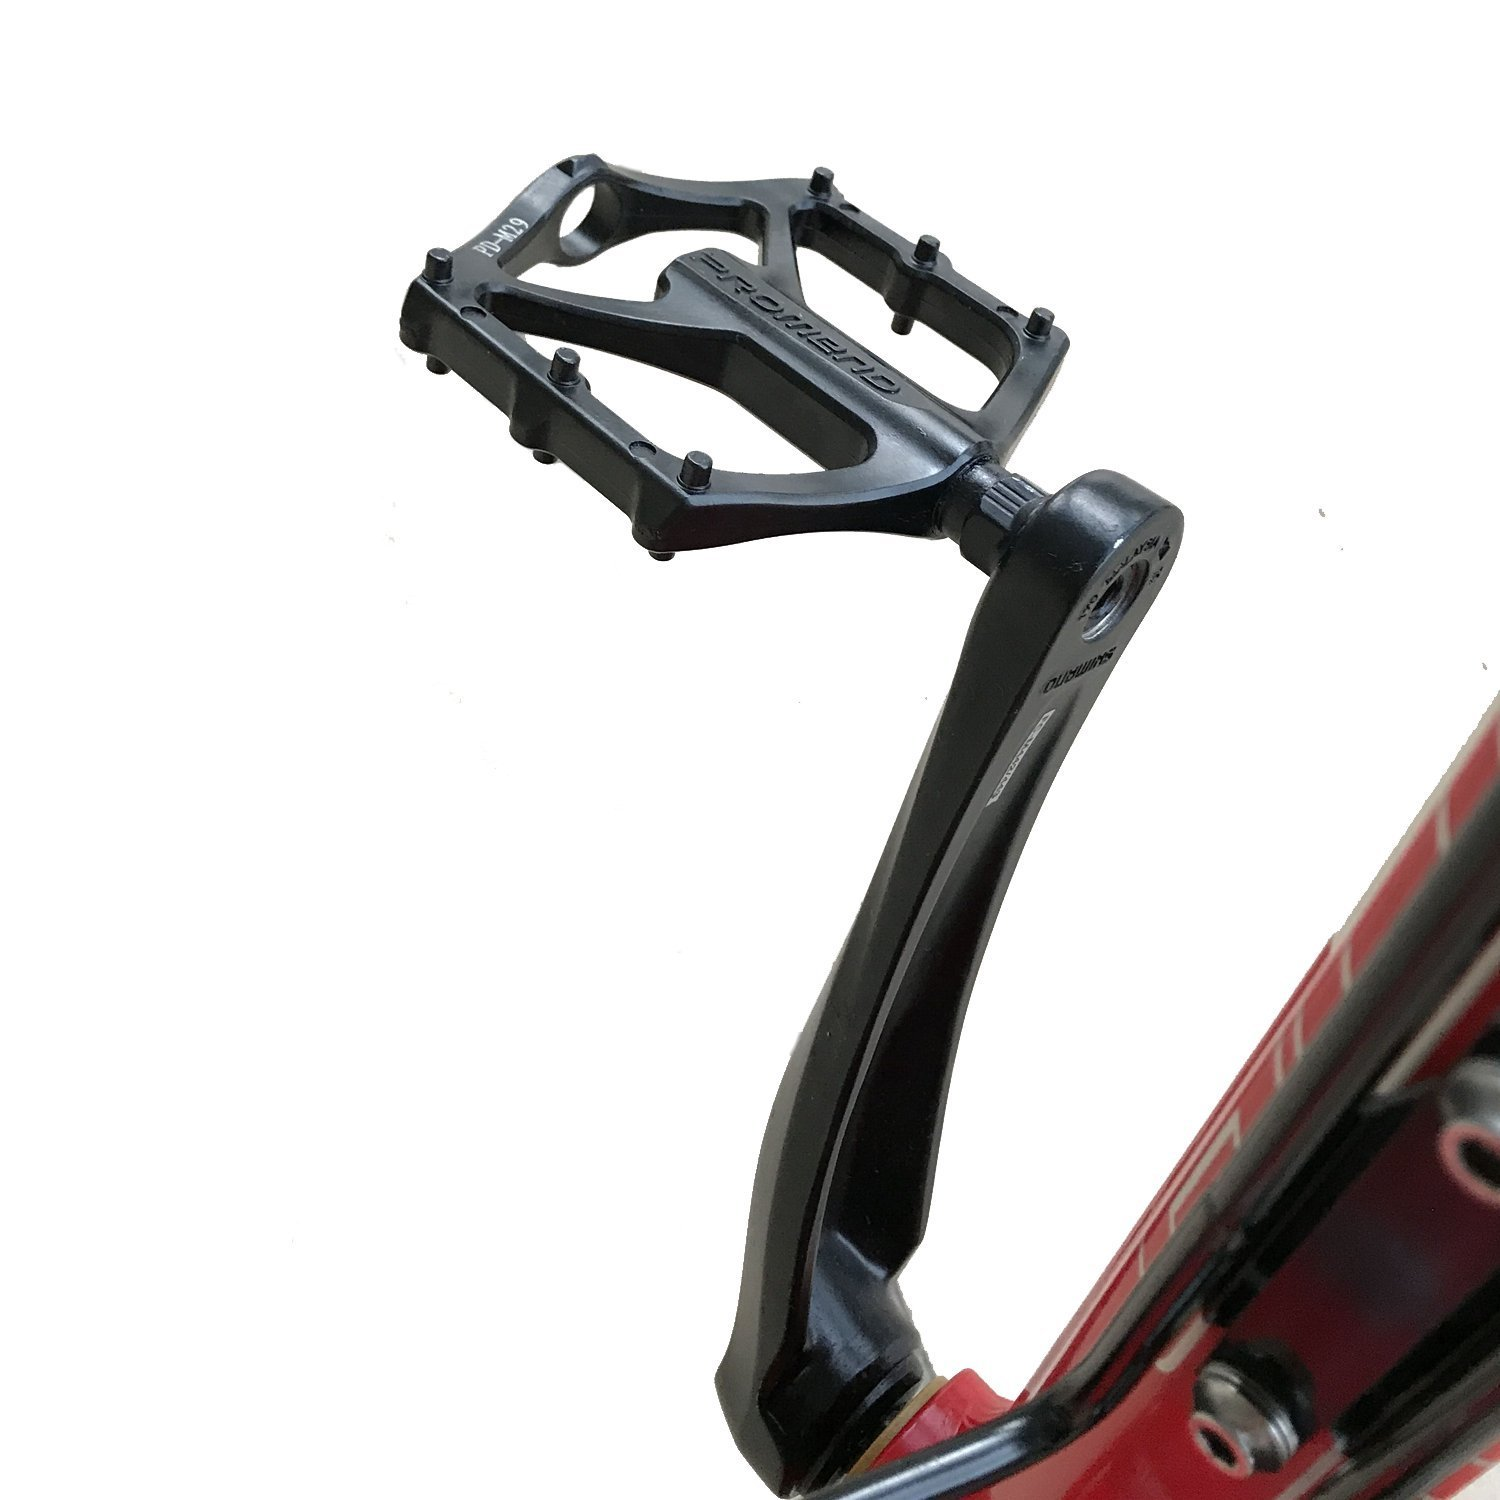 1pair PROMEND Mountain Bike Pedal Lightweight Aluminium Alloy Bearing Pedals For BMX Road MTB Bicycle Bicycle Accessories